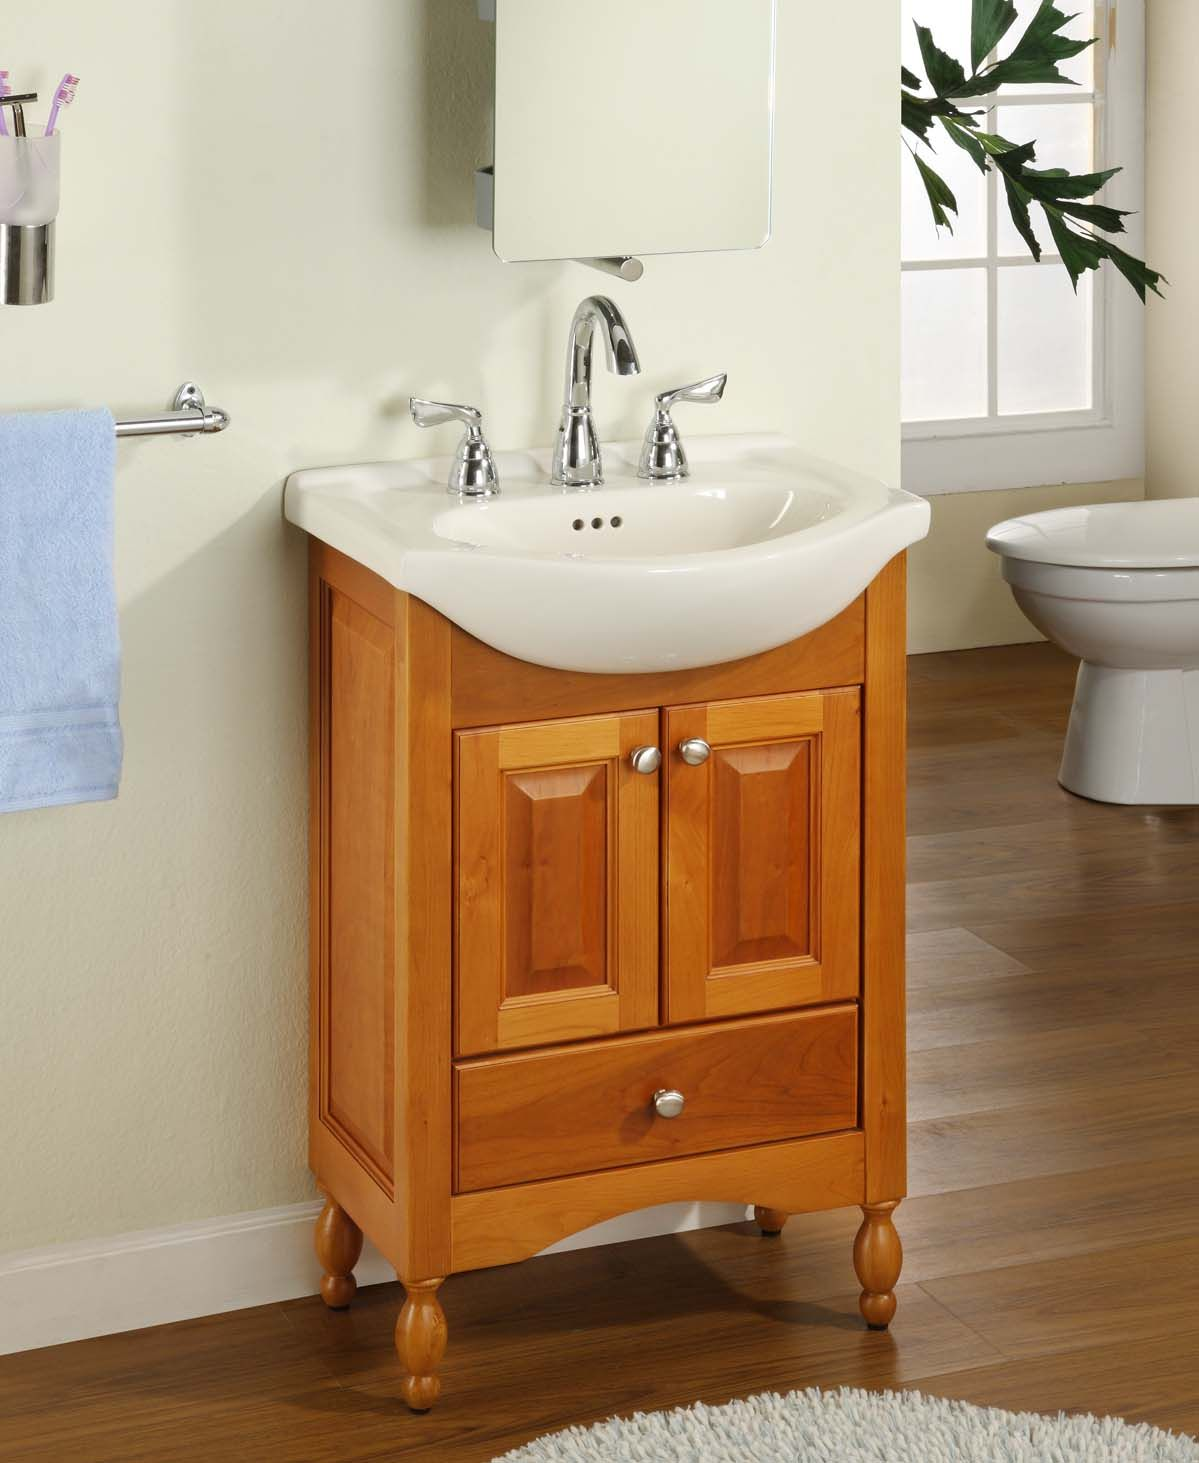 Delicieux Natural Polished Maple Wood Narrow Bathroom Vanity For Ivory Soap .